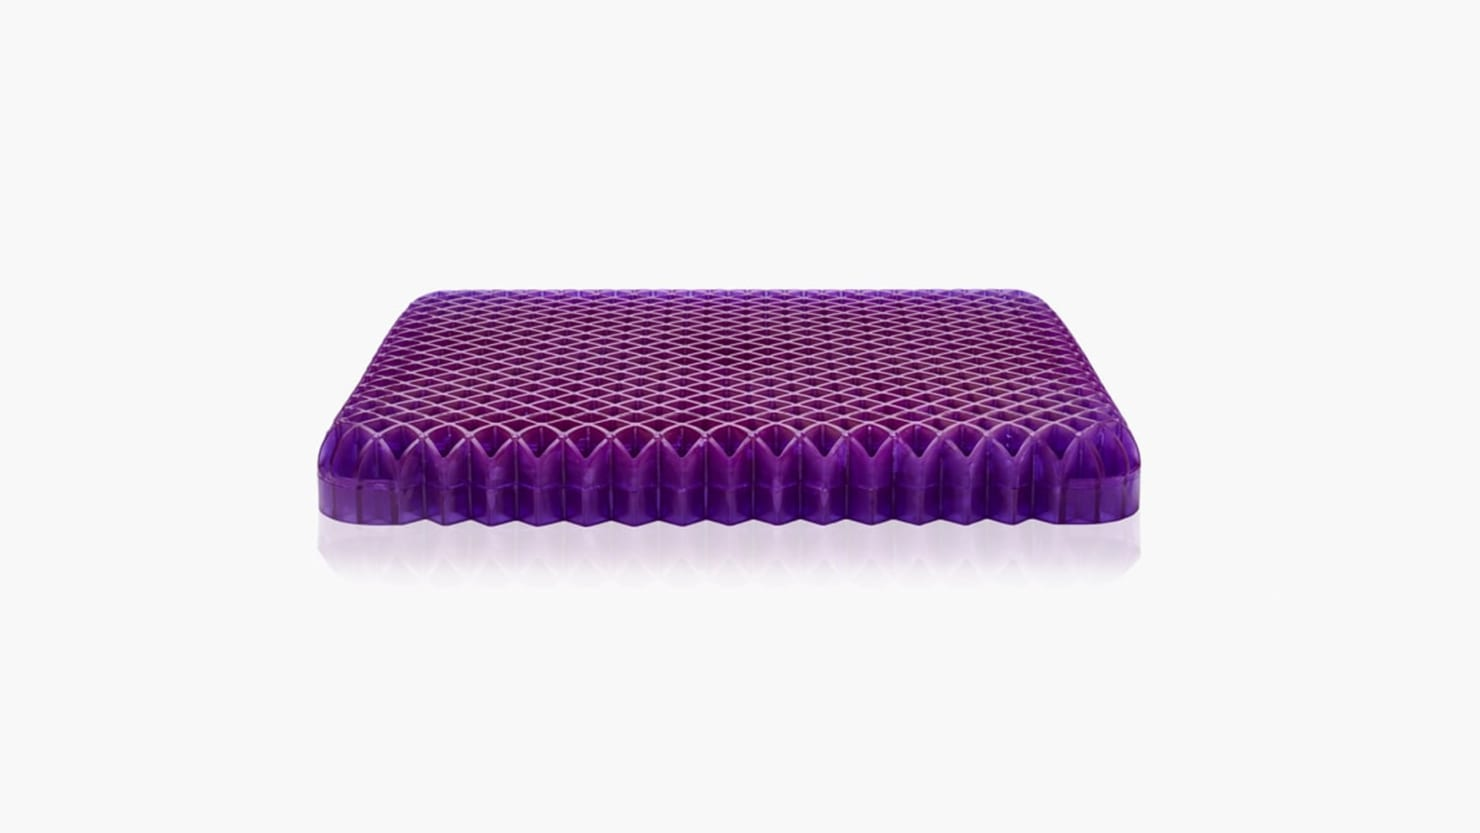 Purple's Seat Cushion Makes Any Chair The Most Comfortable Place to Sit